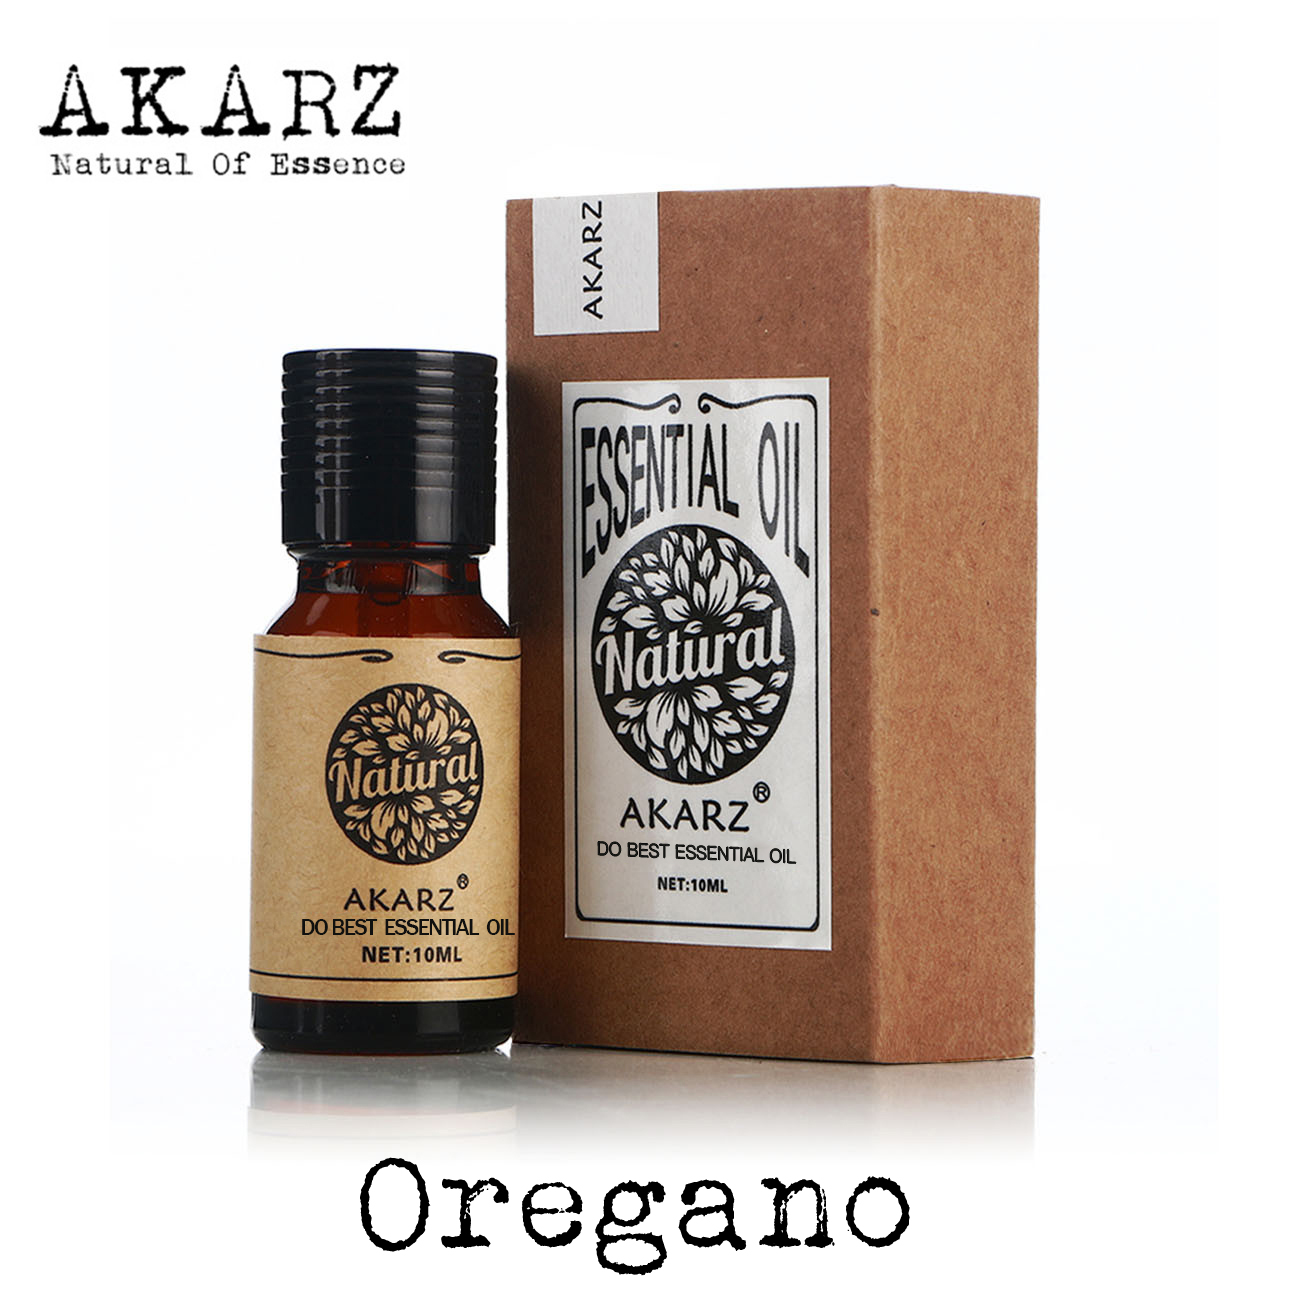 AKARZ Famous brand natural Oregano essential oil Eliminate virus bacteria Enhanced immunity Oregano oil akarz famous brand natural angelica oil dilation of blood vessels promoting hepatocyte regeneration angelica essential oil